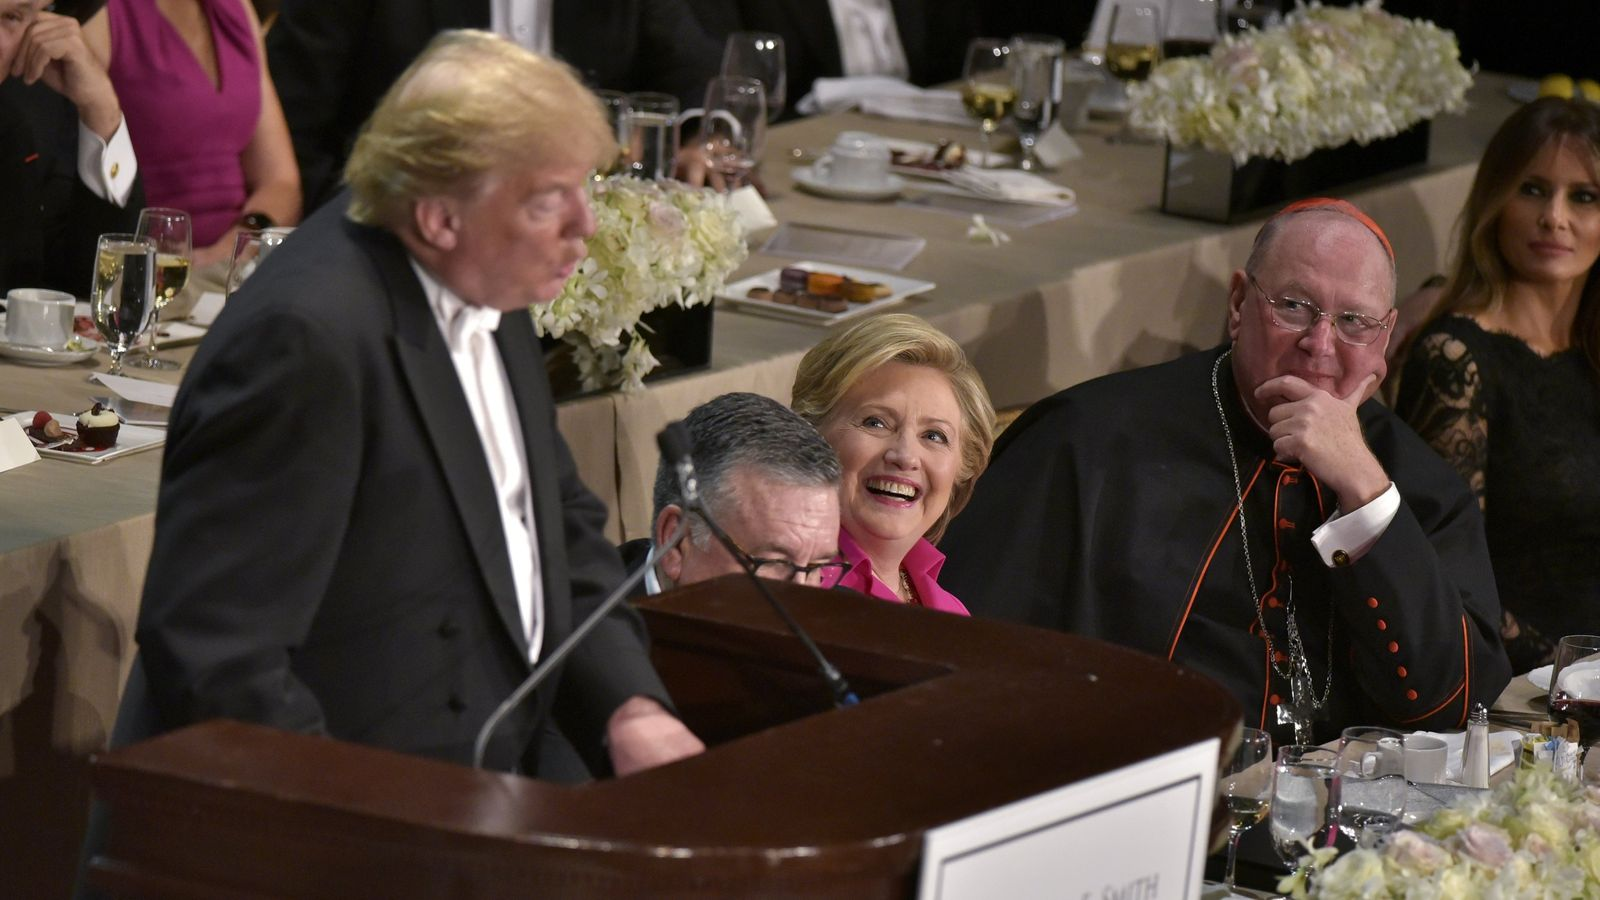 Democratic presidential nominee Hillary Clinton laughs as Republican presidential nominee Donald Trump speaks during the 71st annual Alfred E. Smith Memorial Foundation Dinner